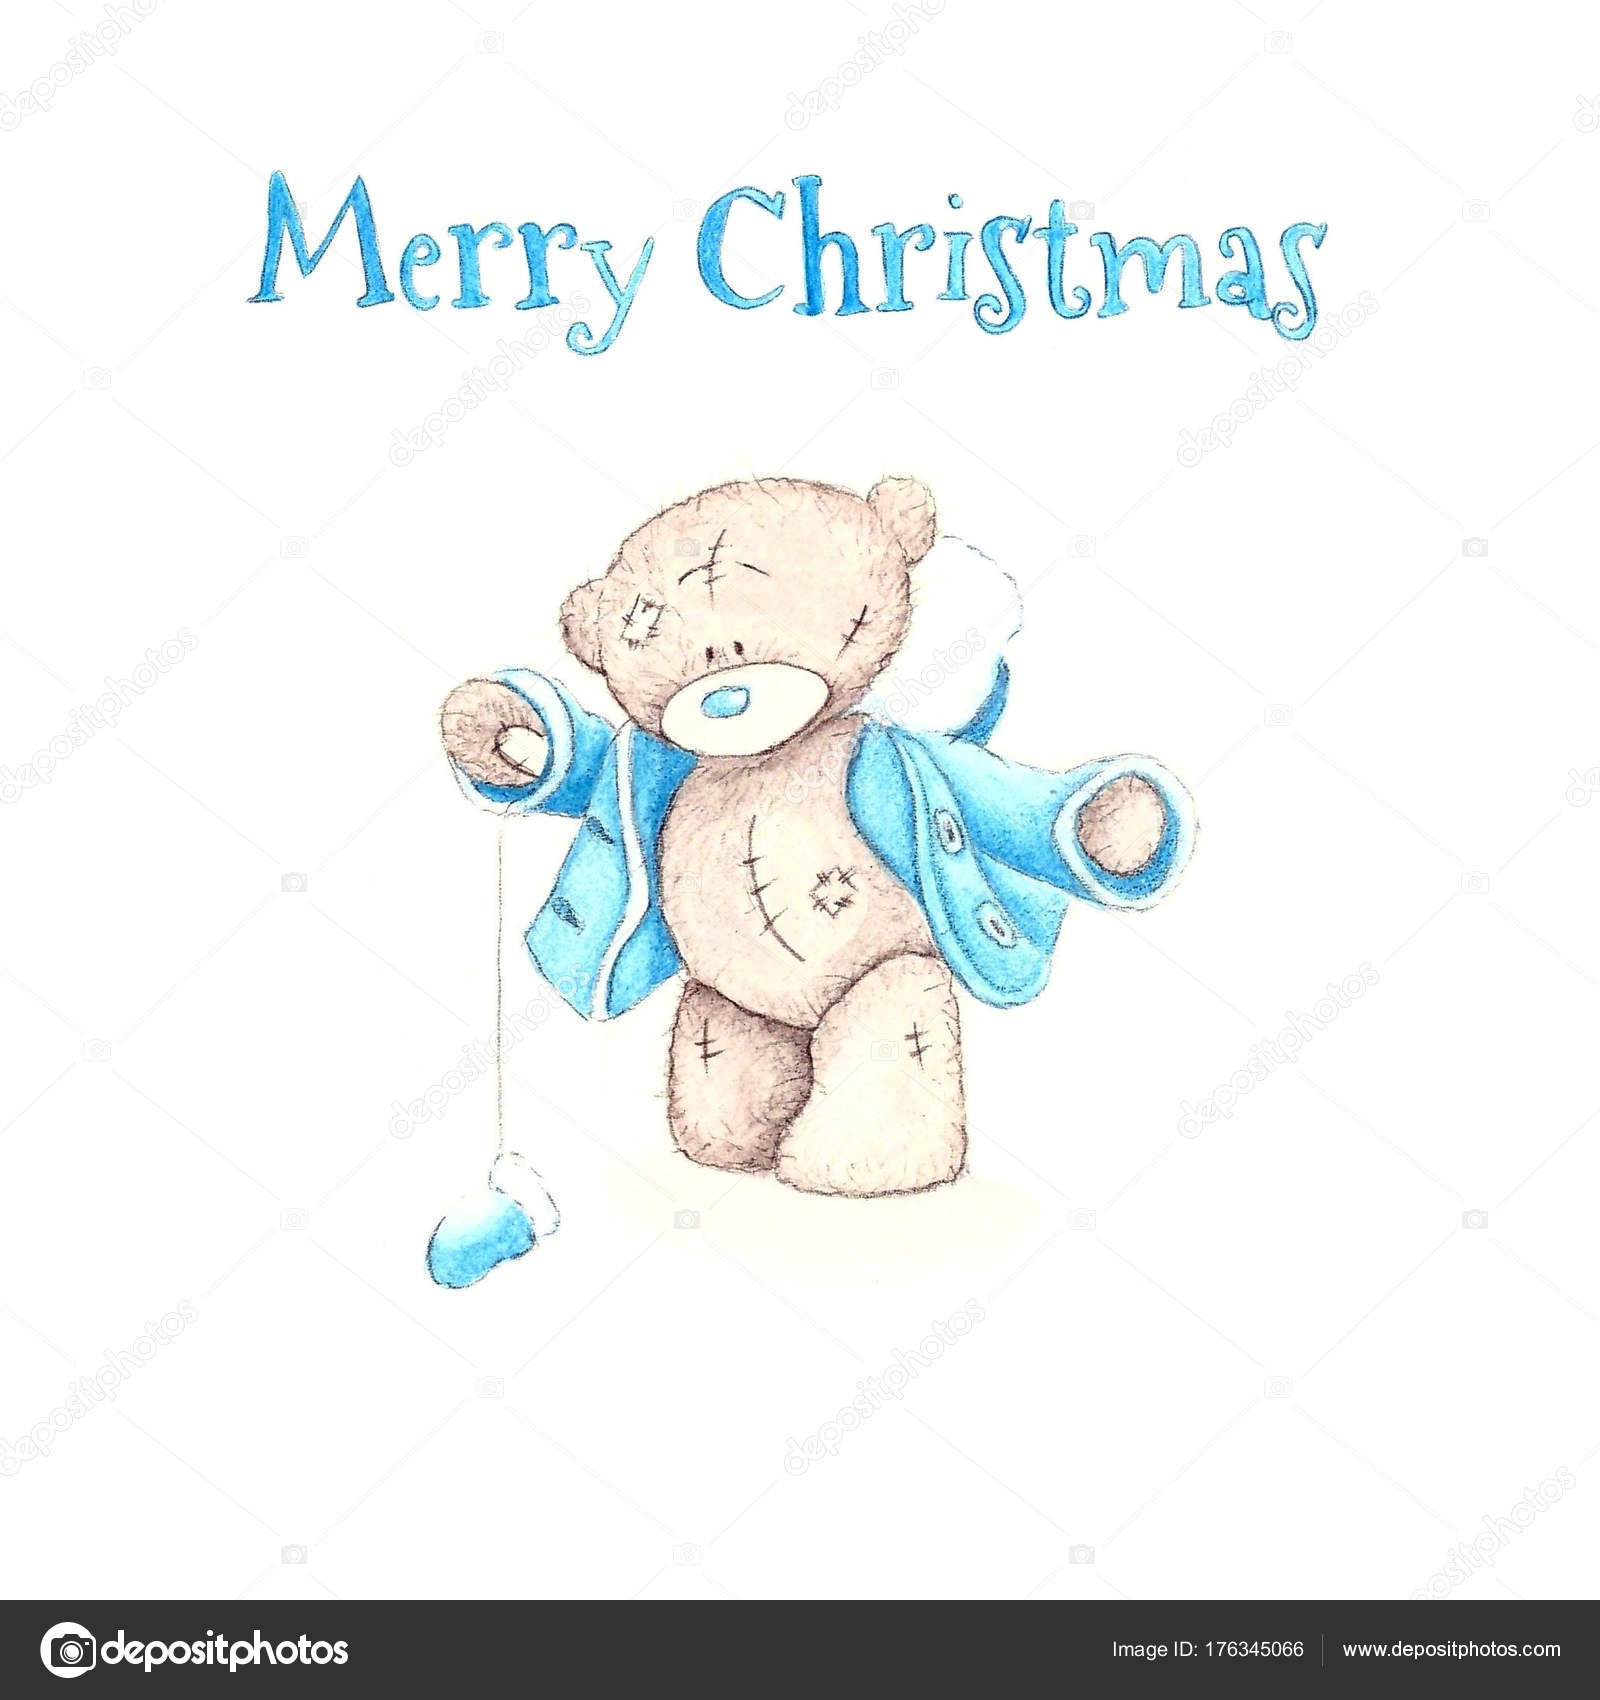 cute hand drawn watercolor toy teddy bears in blue colors isolated on white background new year background for card and congratulation with white bear and